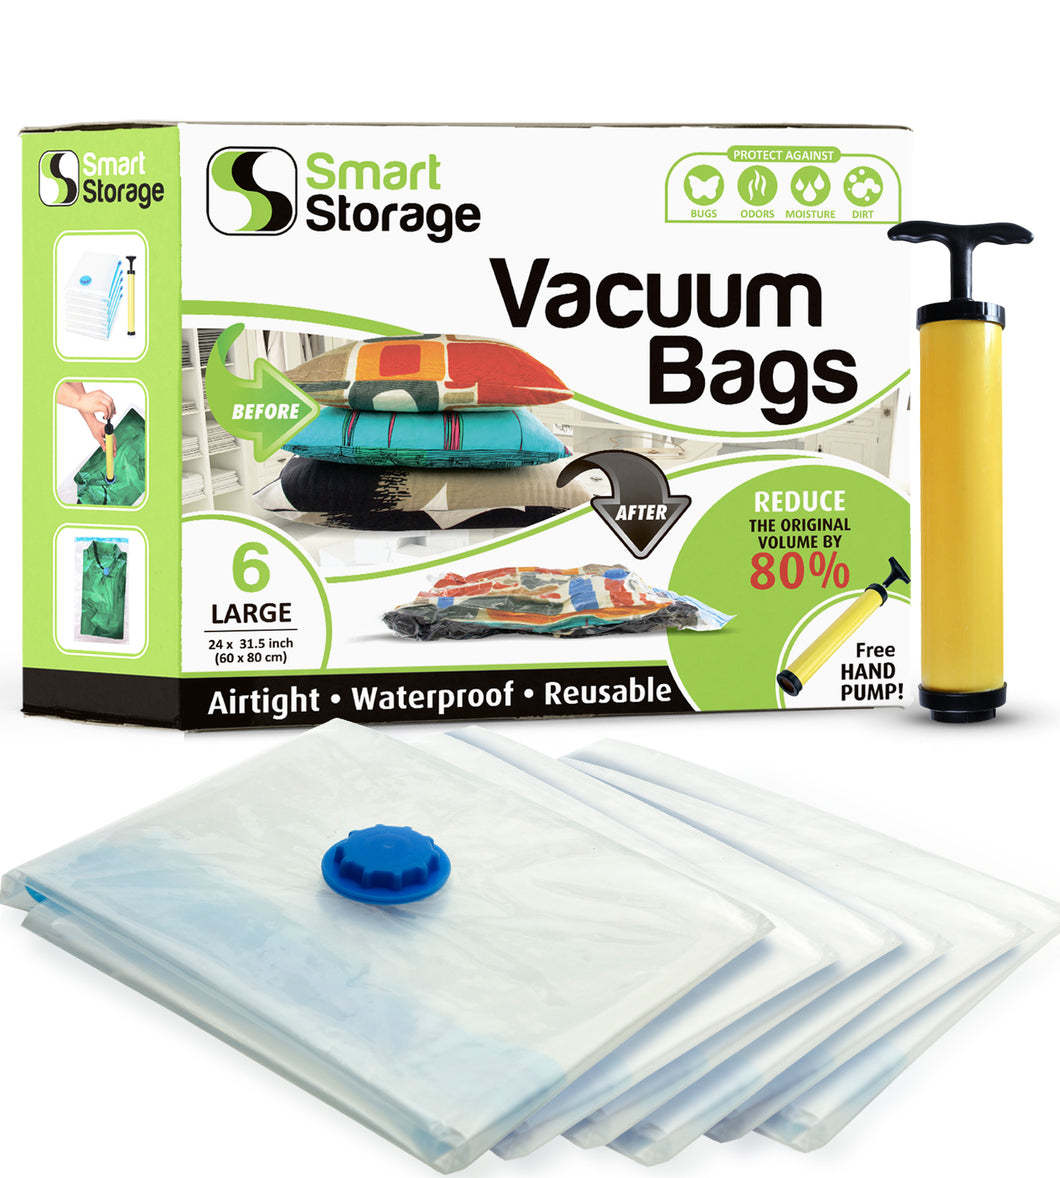 6 PC Space Saver Vacuum Bags (Large) + Travel Pump by Smart Storage - Smart Storage